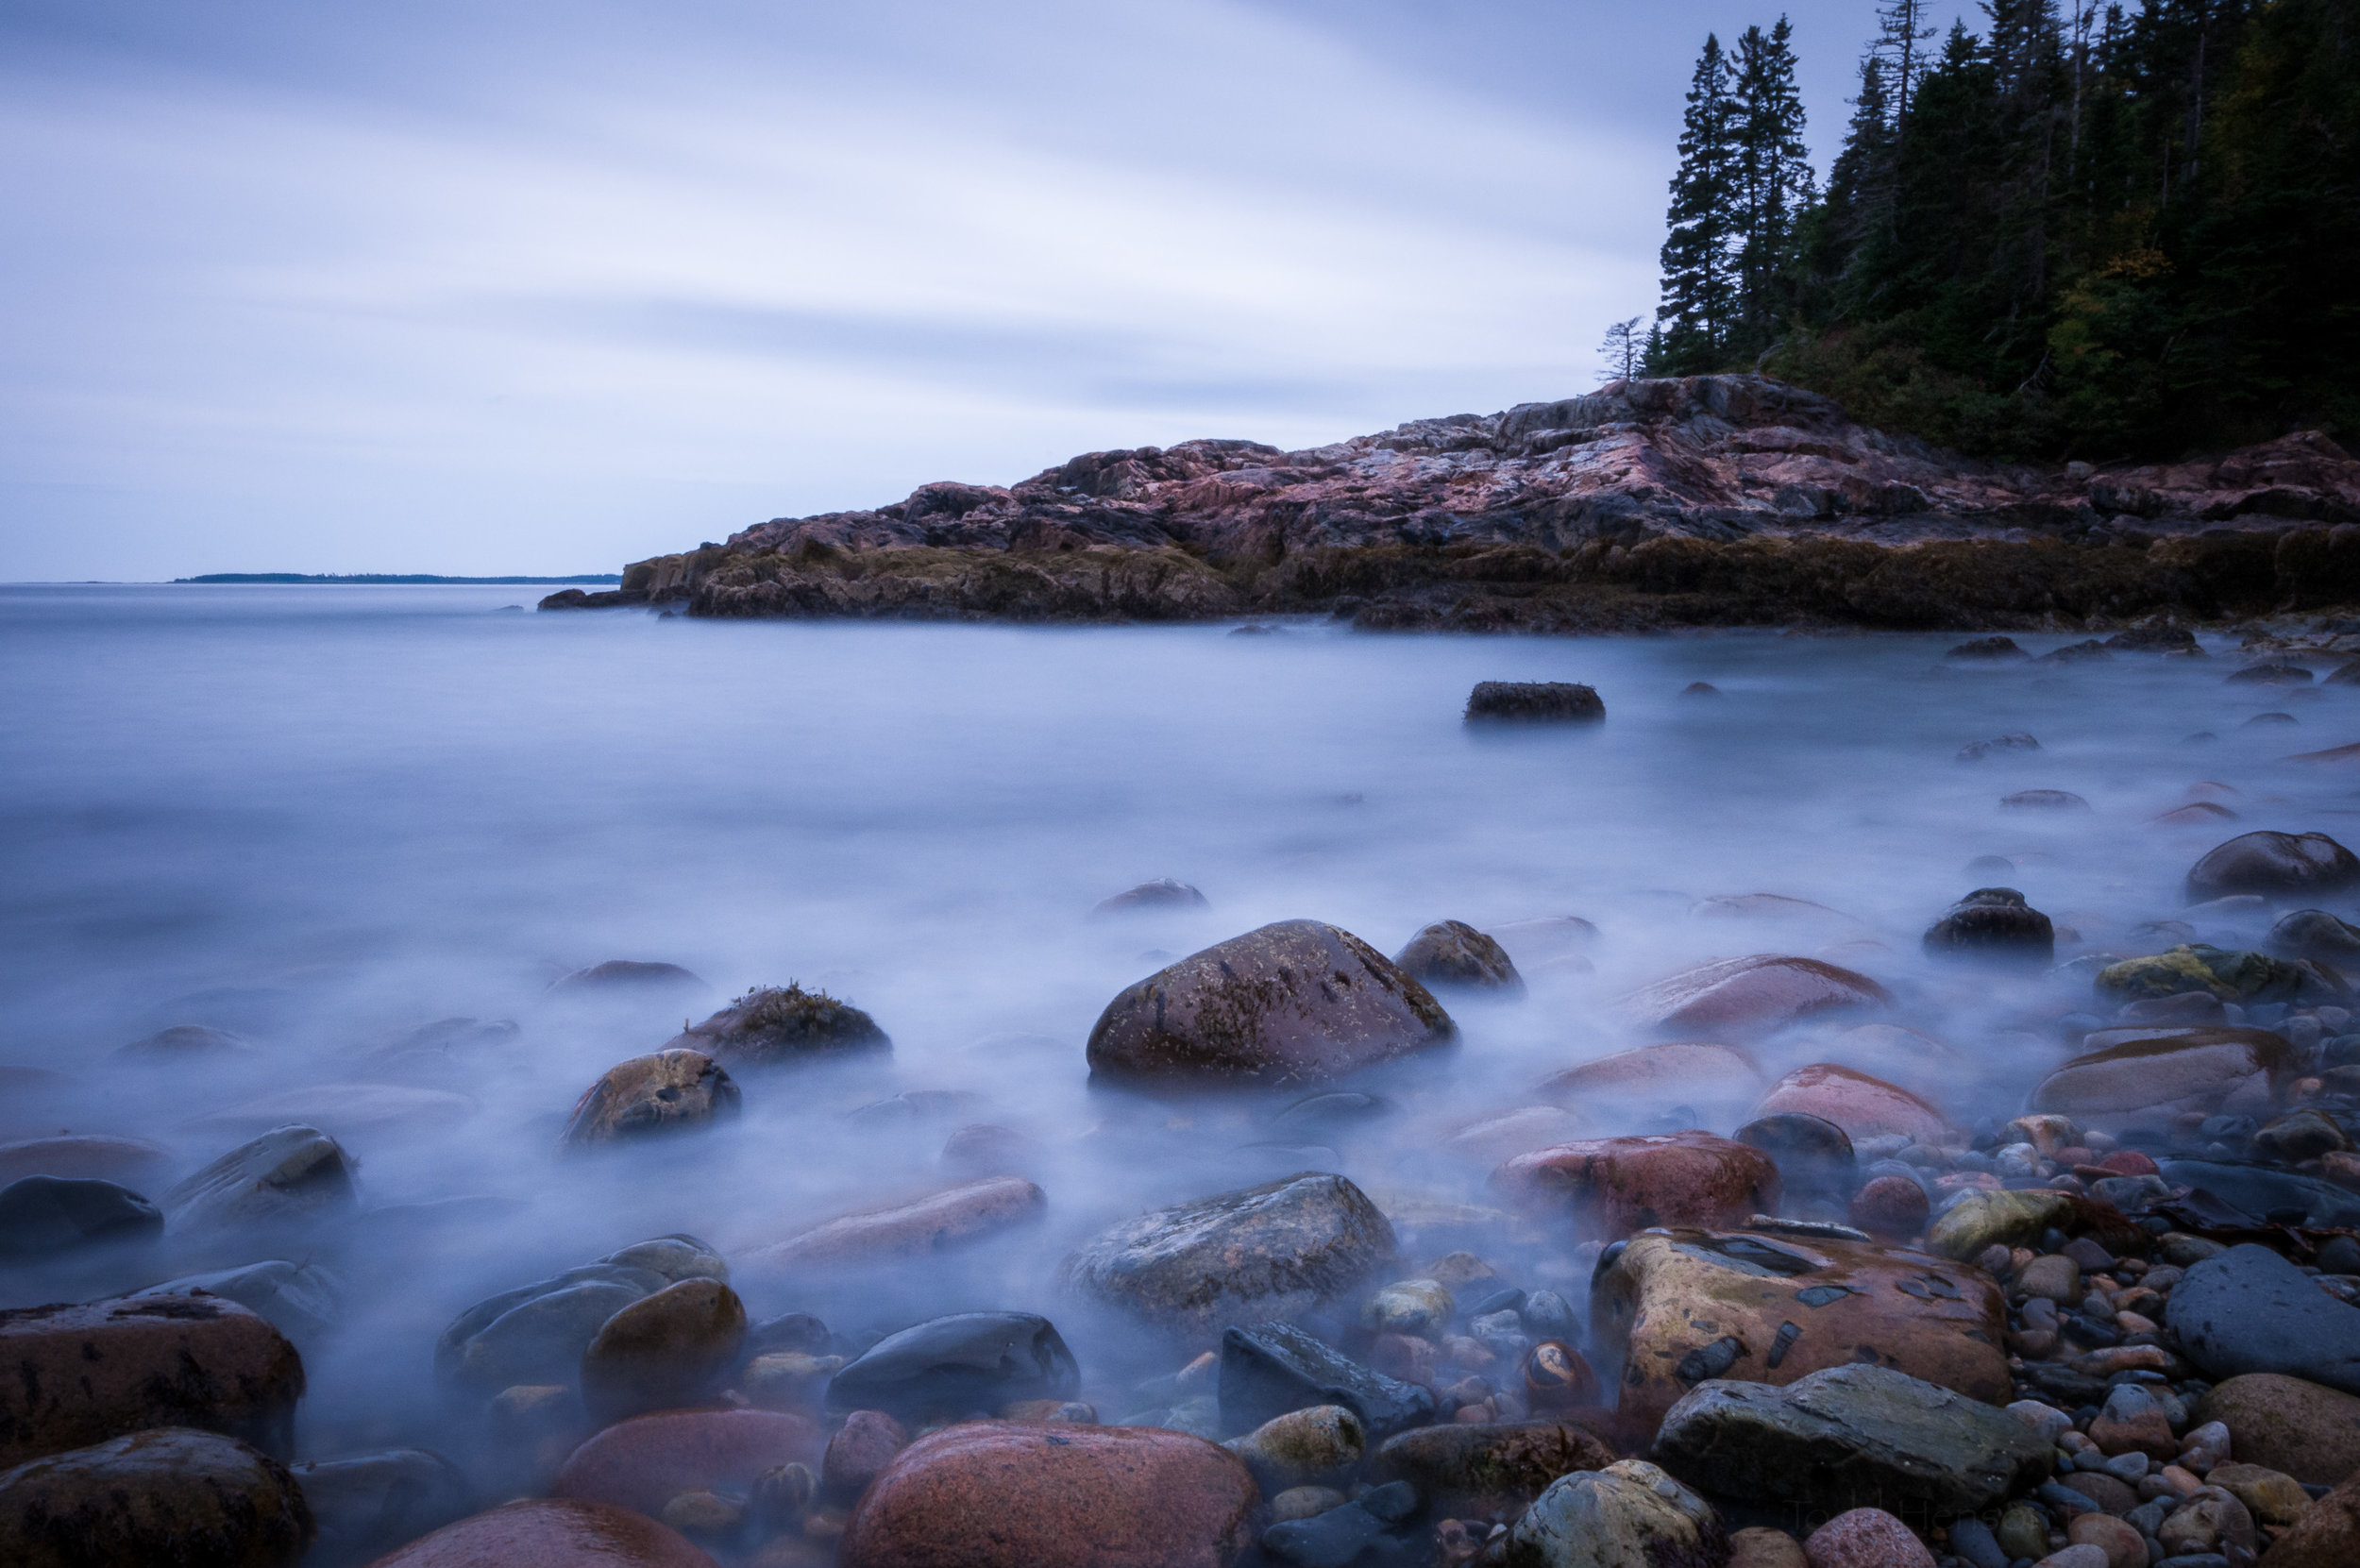 Long exposure (70 sec) of right side of inlet taken from rocky beach, cooler tones